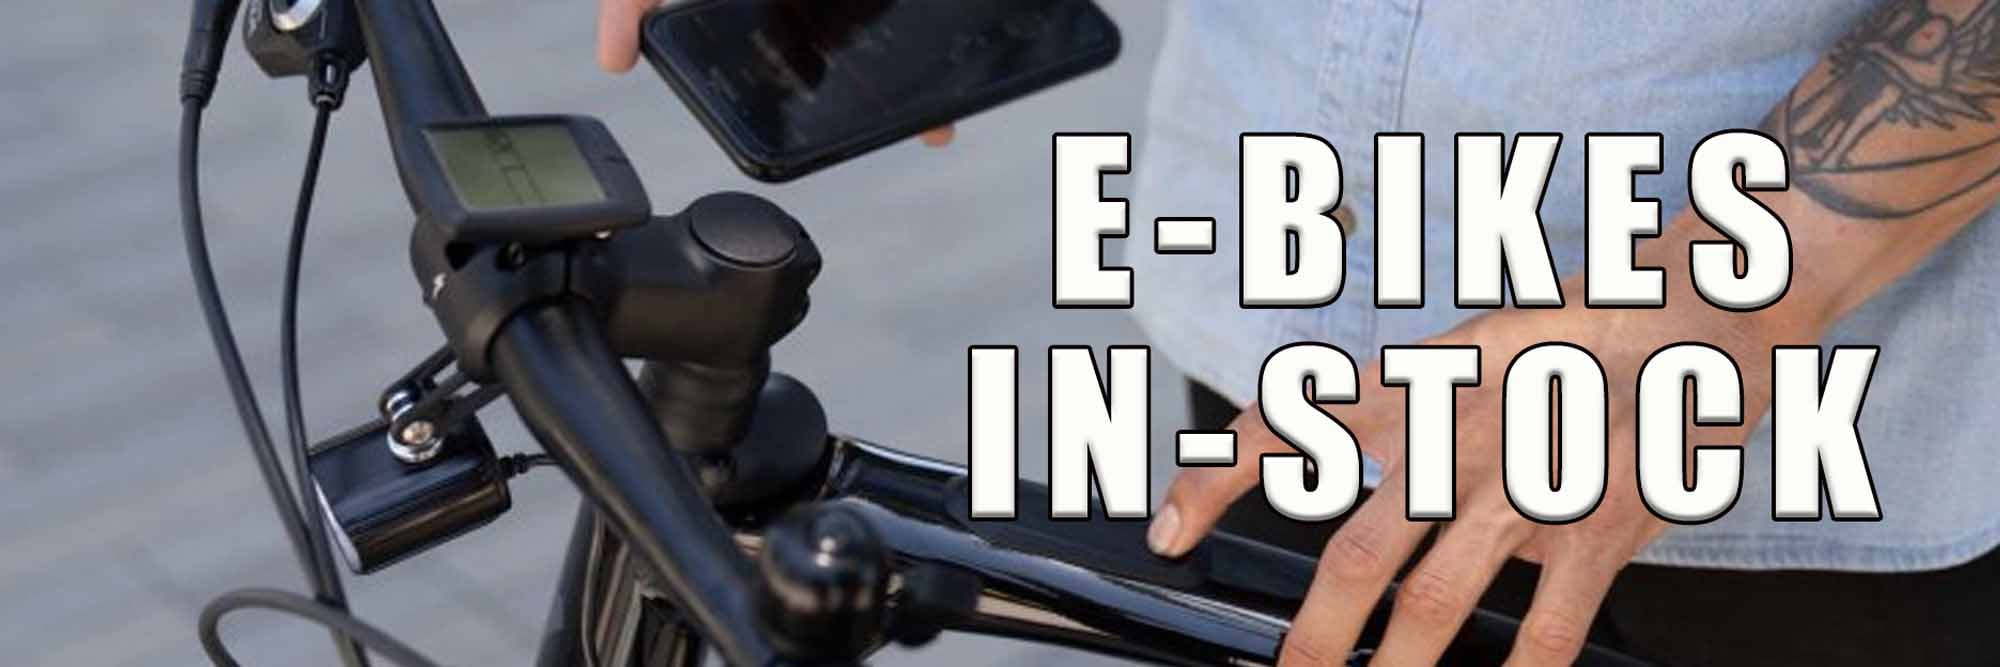 Electric Bikes - Come See if an E-Bike is right for You